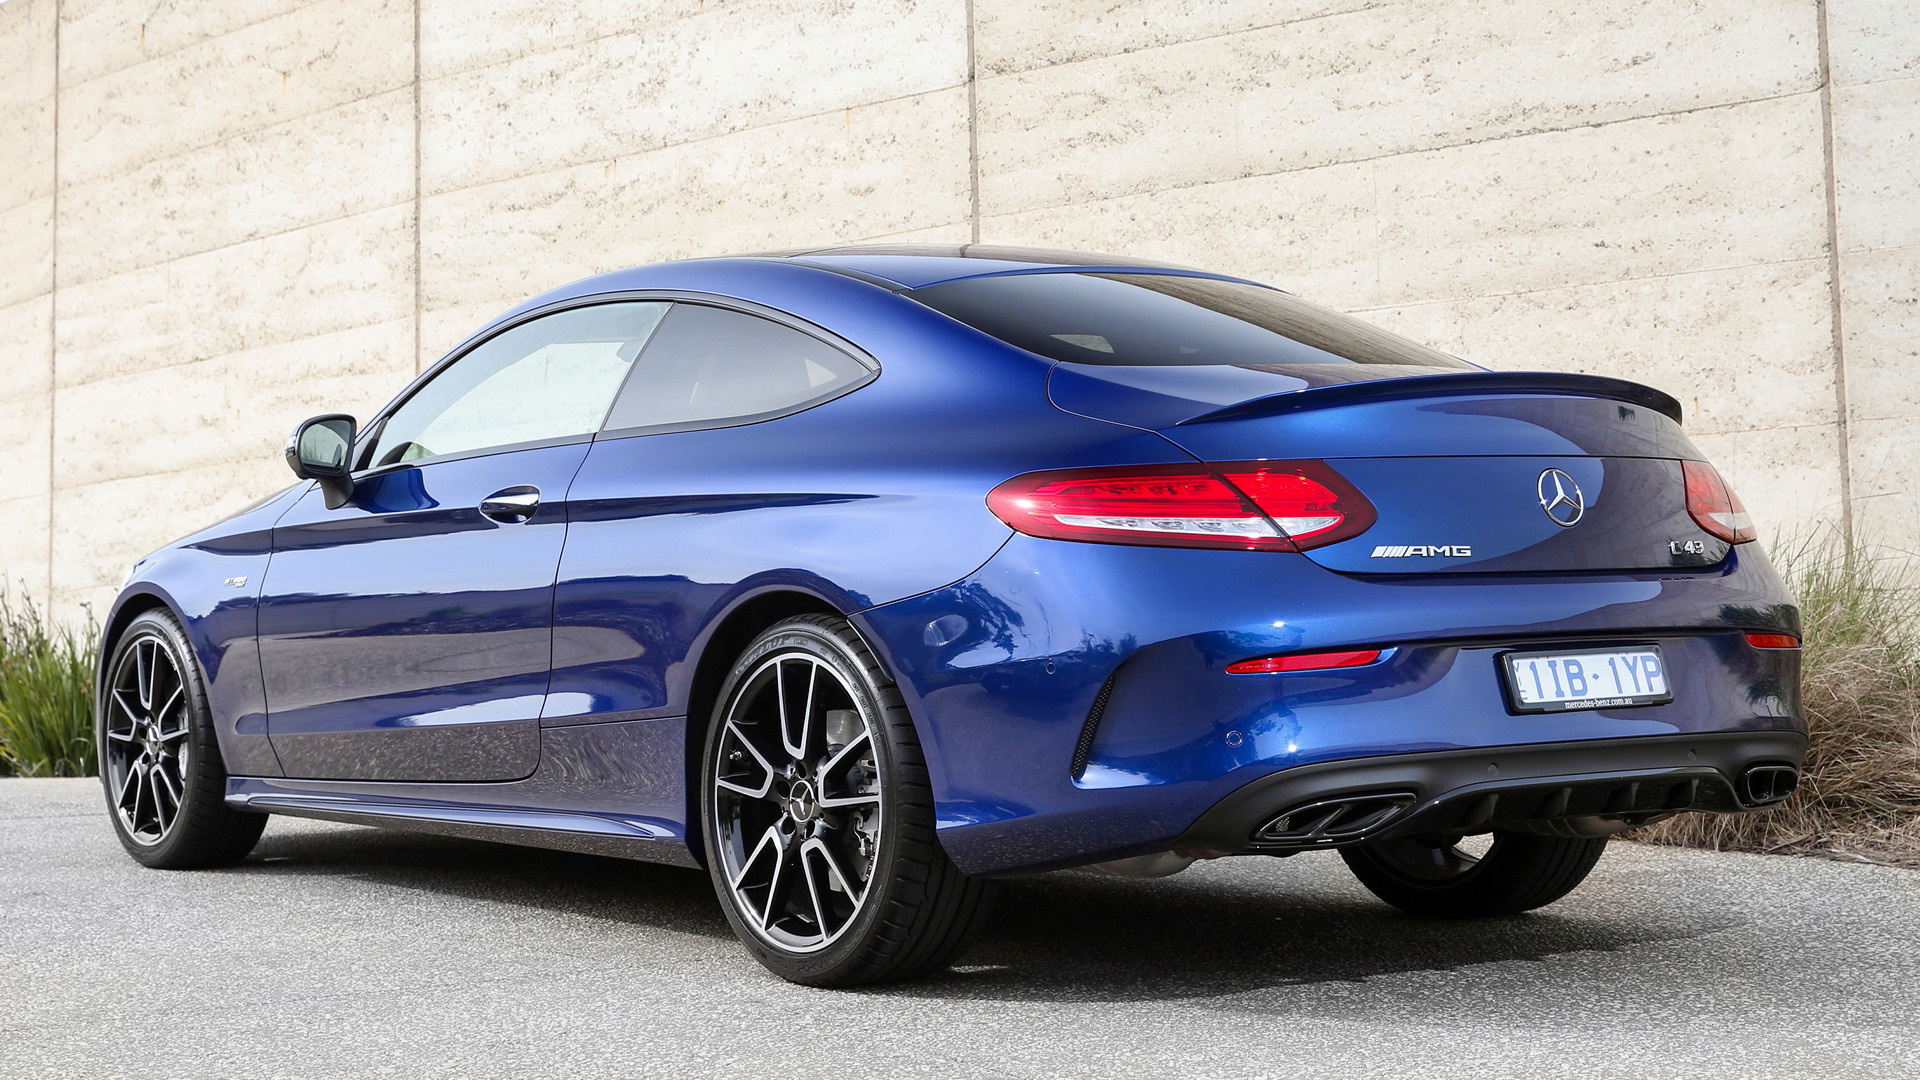 2017 Dodge Ram >> Mercedes-AMG C 43 Coupe (2016) AU Wallpapers and HD Images ...